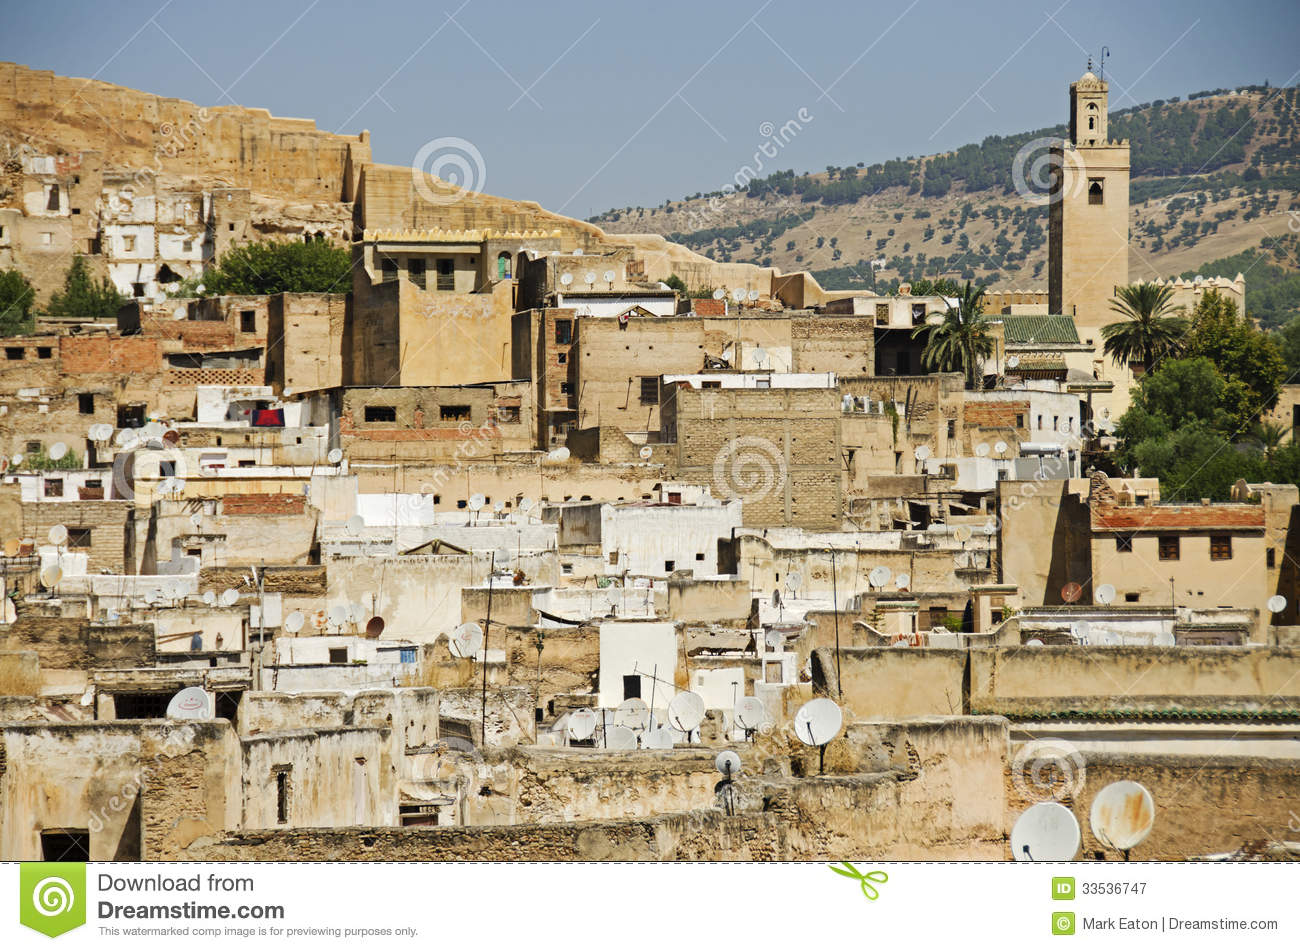 Moroccan City of Fes